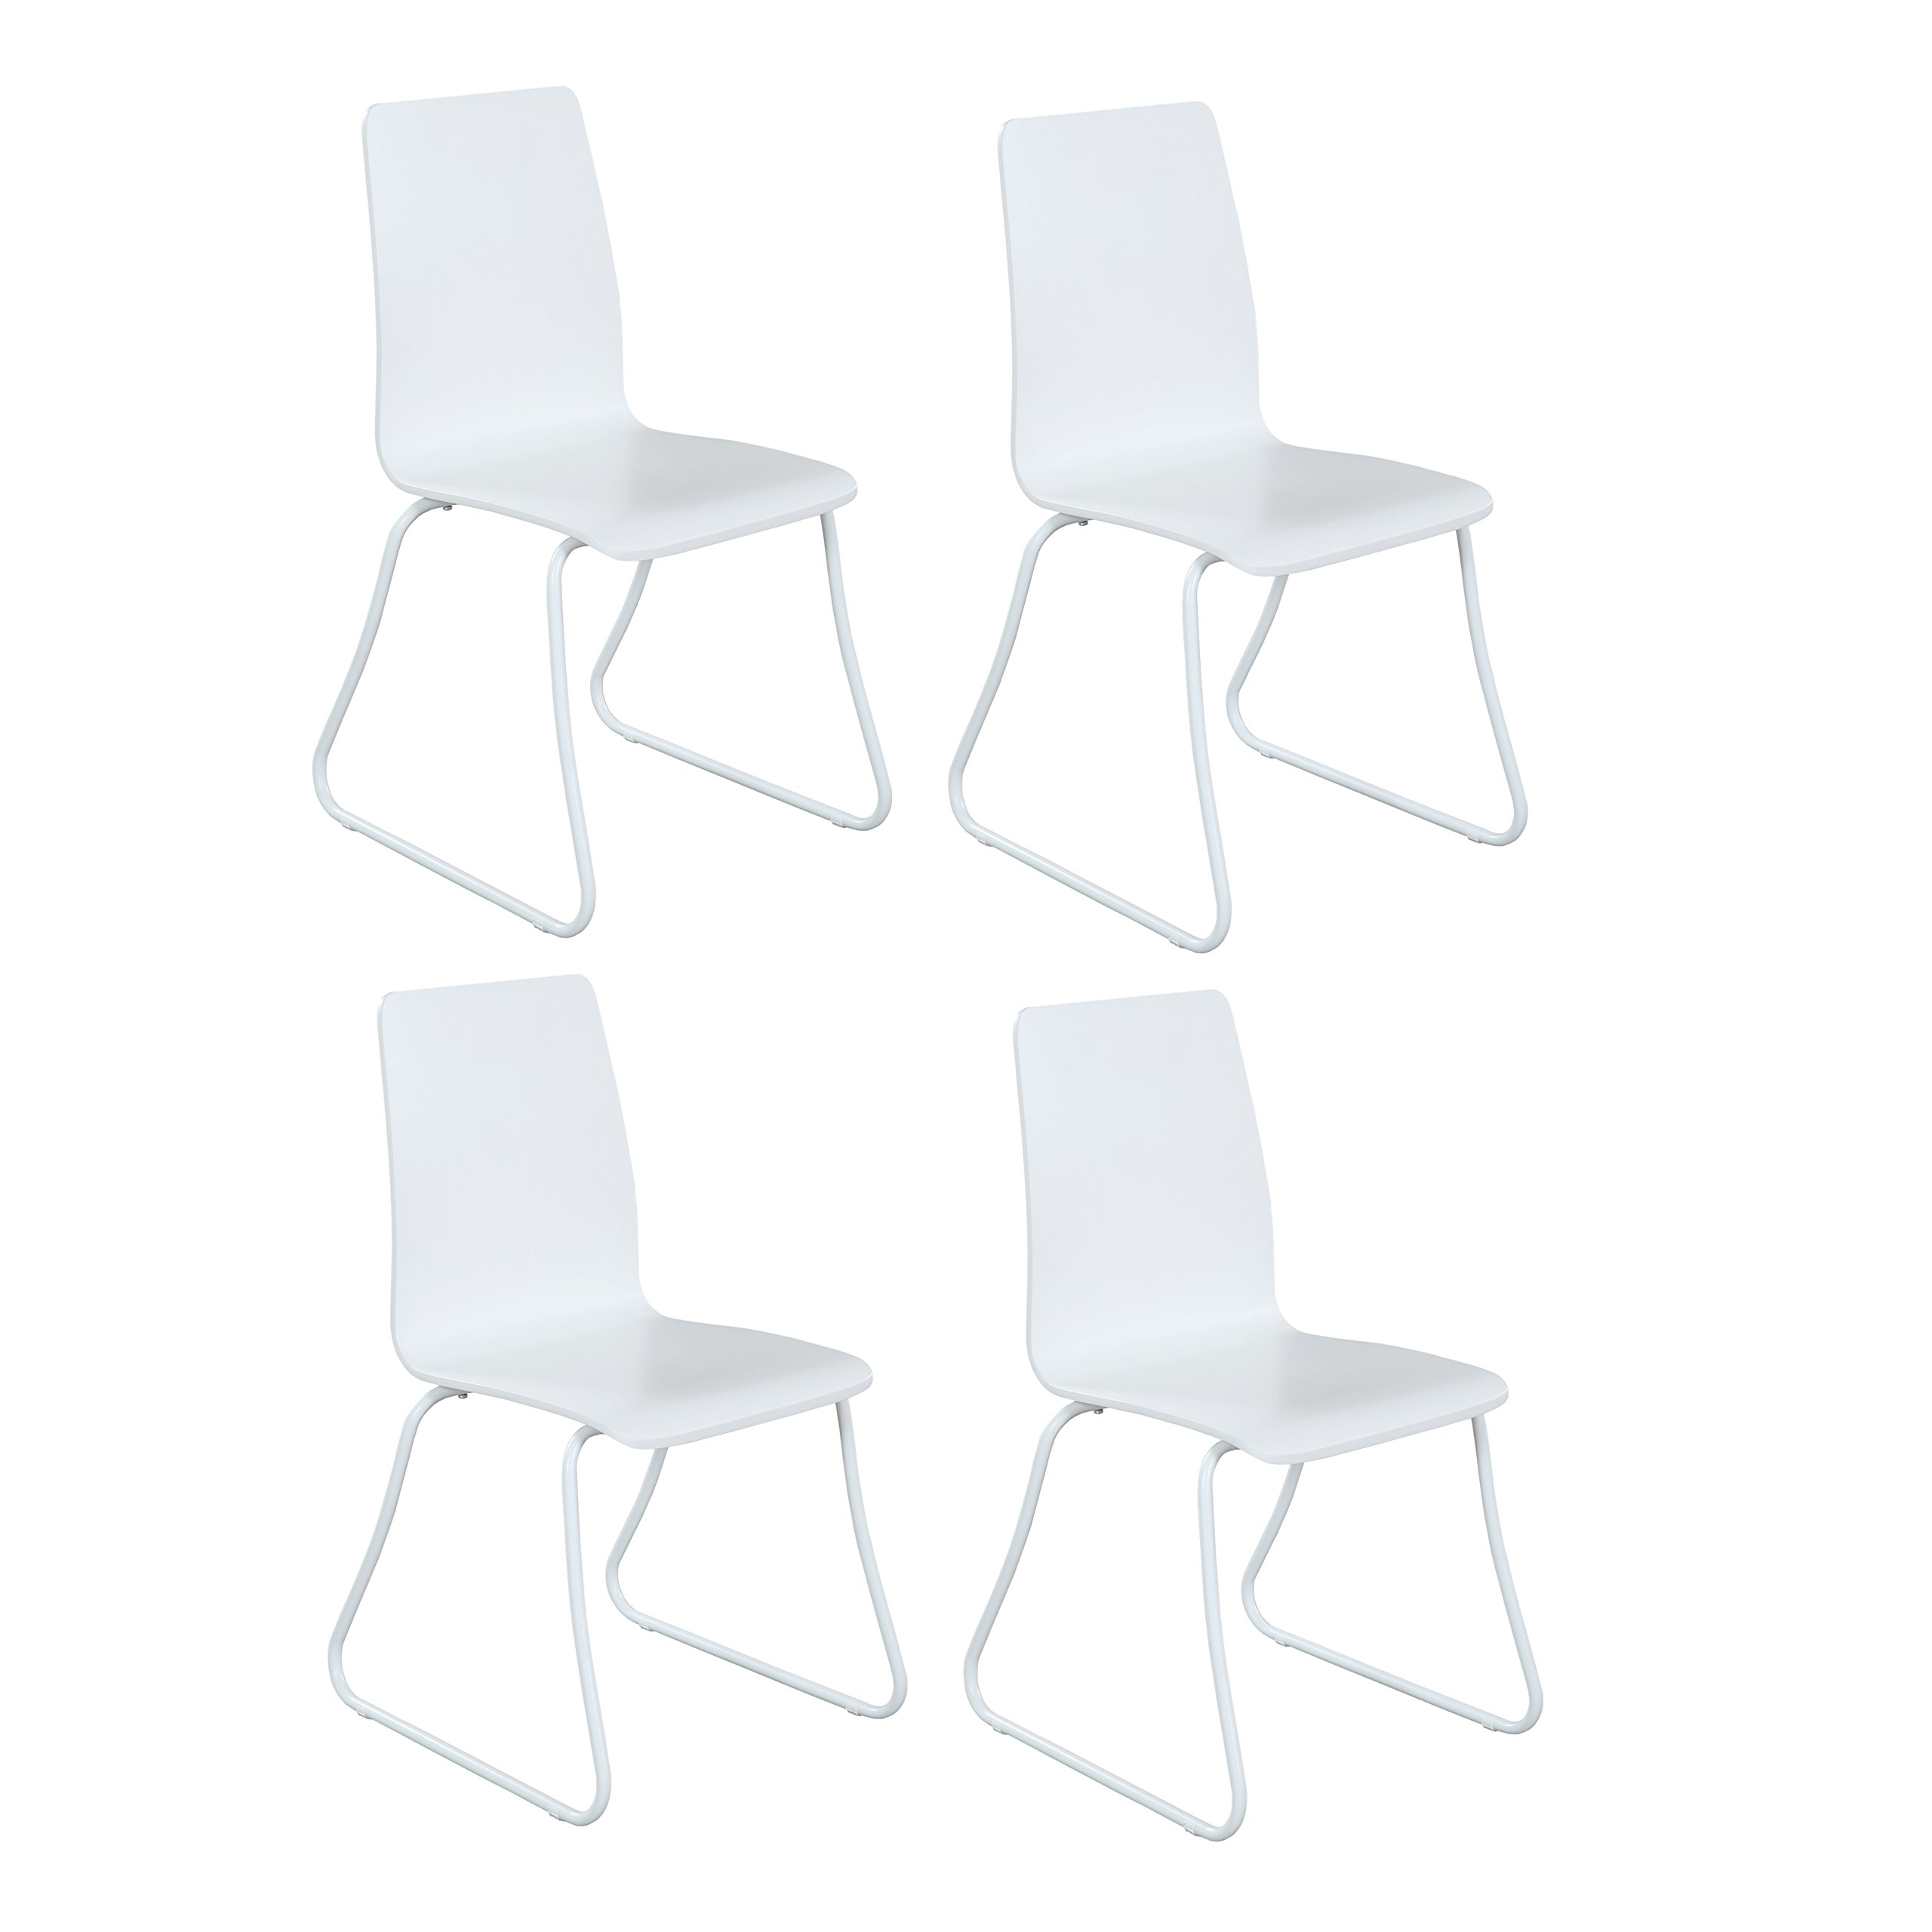 Design Furniture Collection DFC White Dining Side Chair Set of 4 - Modern Style Armless Kitchen Dining Room Chair Plastic with Metal Legs